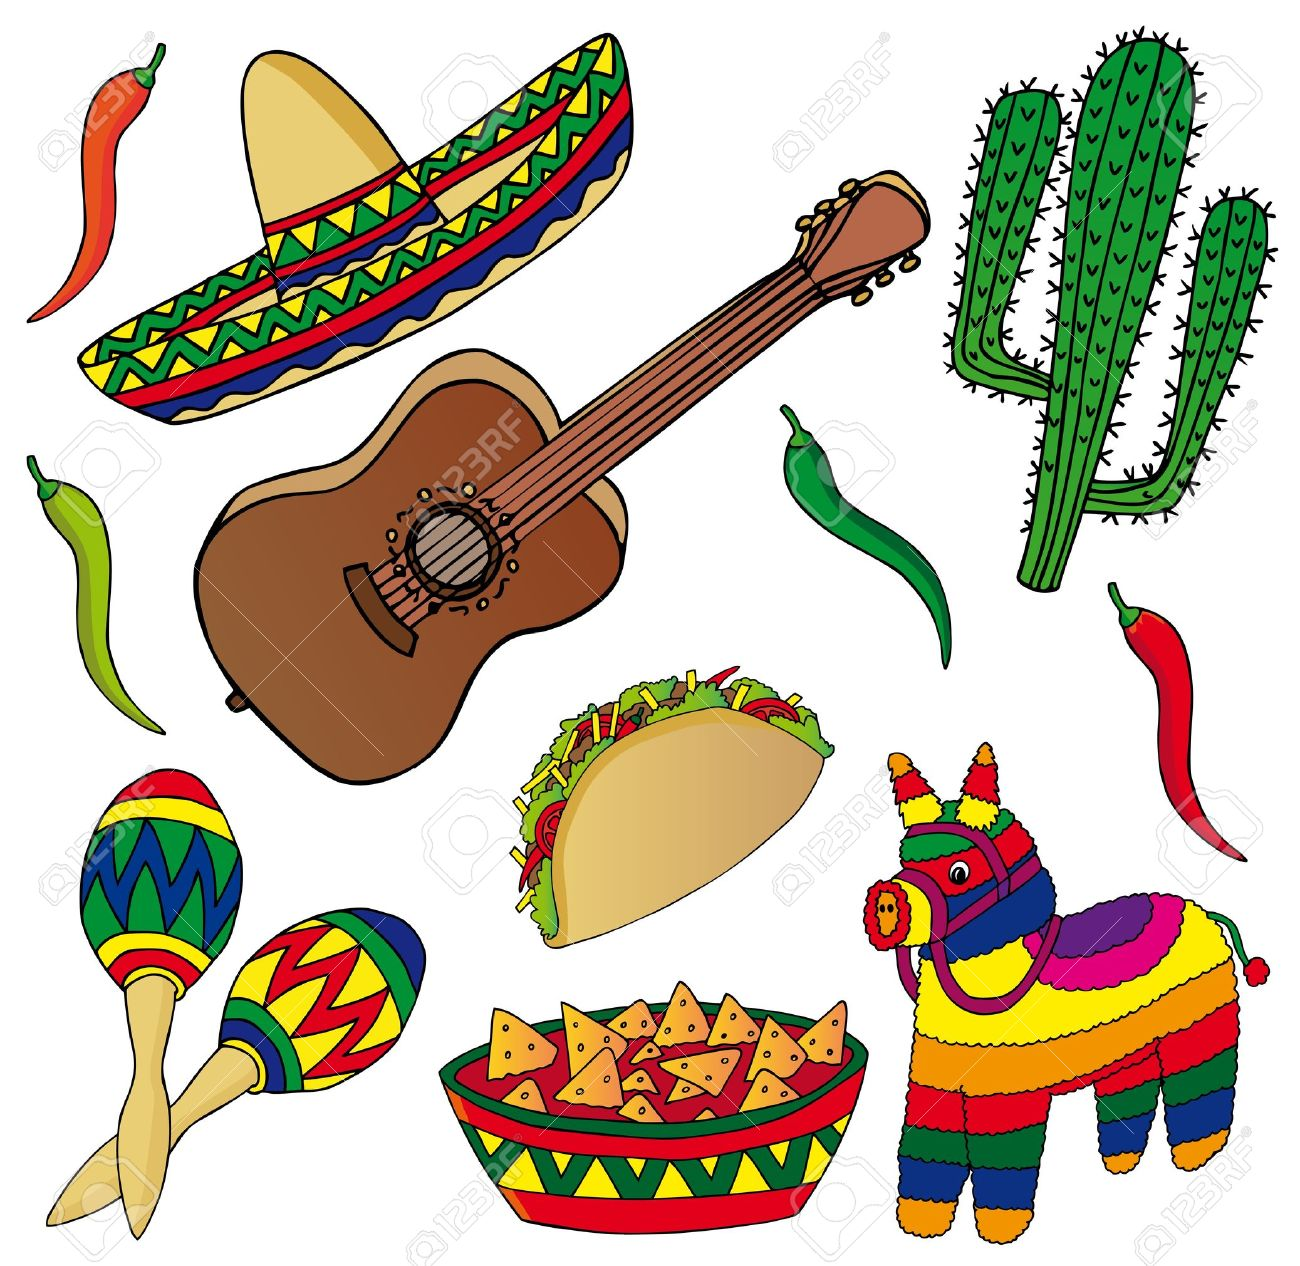 Set of various Mexican images - vector illustration. Stock Vector - 16992702